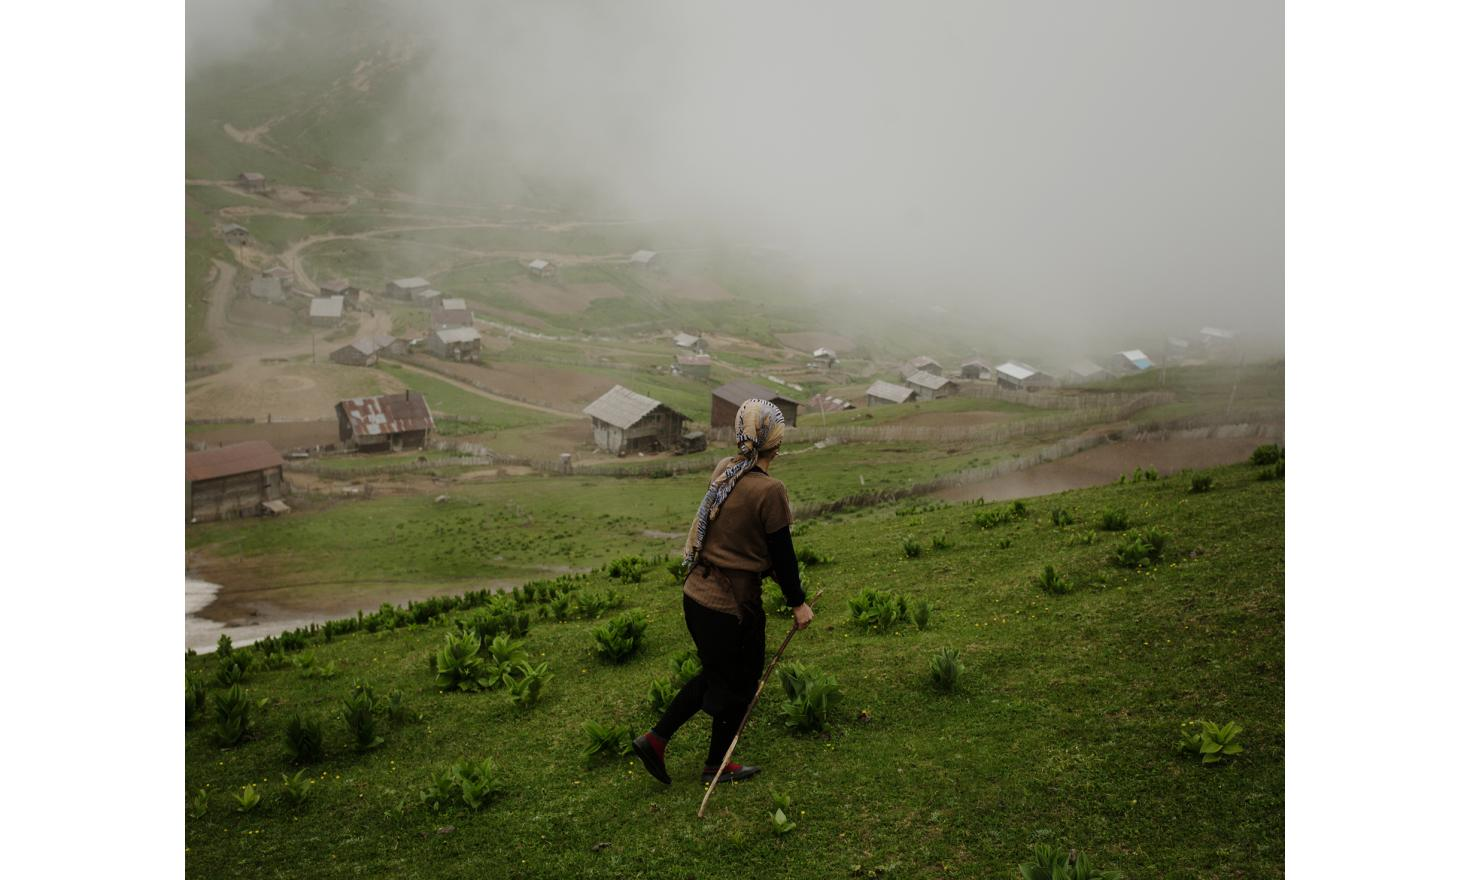 Zortikheli. A woman goes and pick her animals while clouds arrive on the village and rain threatens.